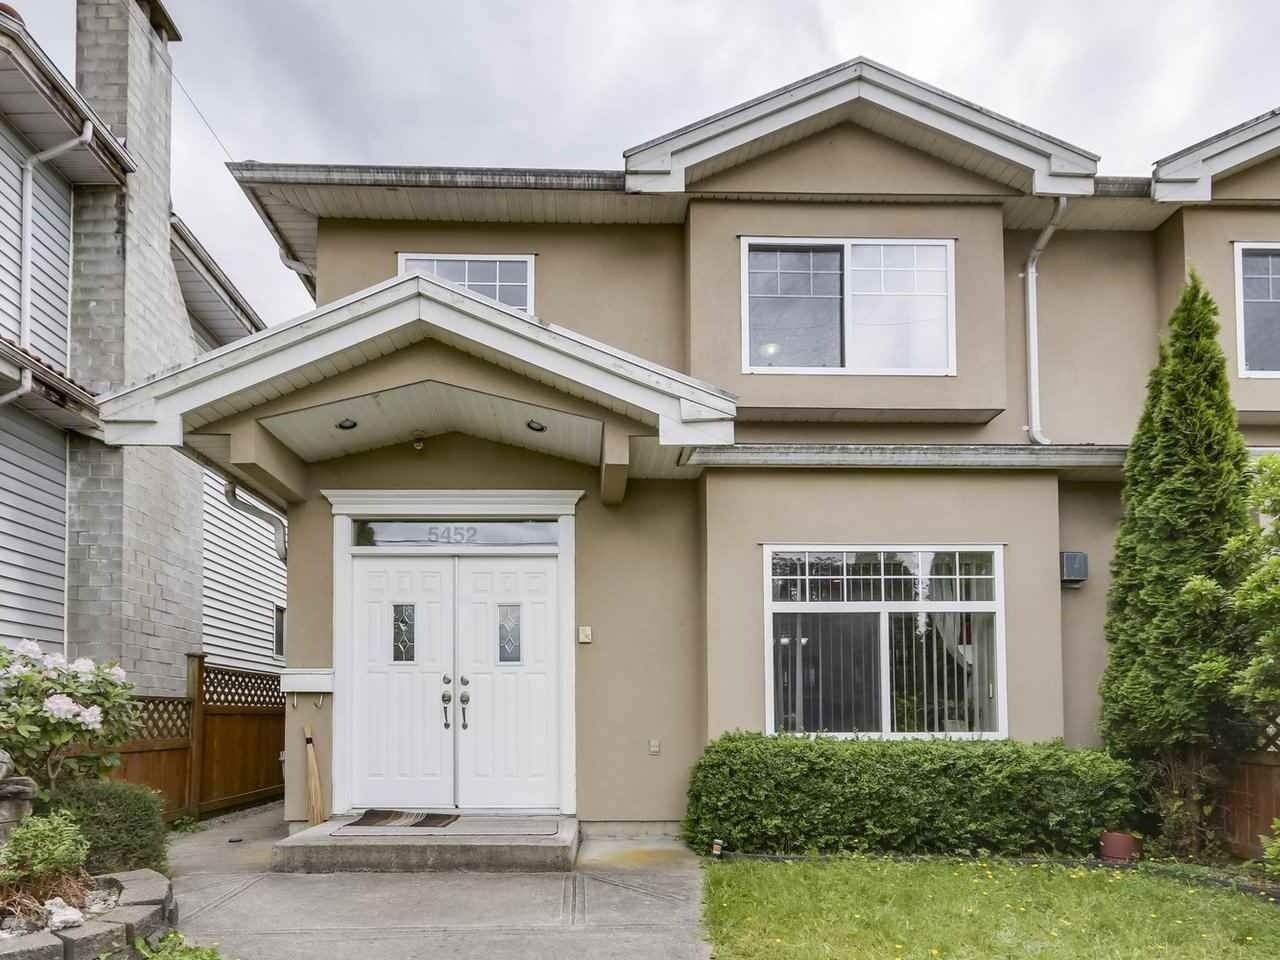 Main Photo: 5452 MANOR Street in Burnaby: Central BN House 1/2 Duplex for sale (Burnaby North)  : MLS®# R2358736